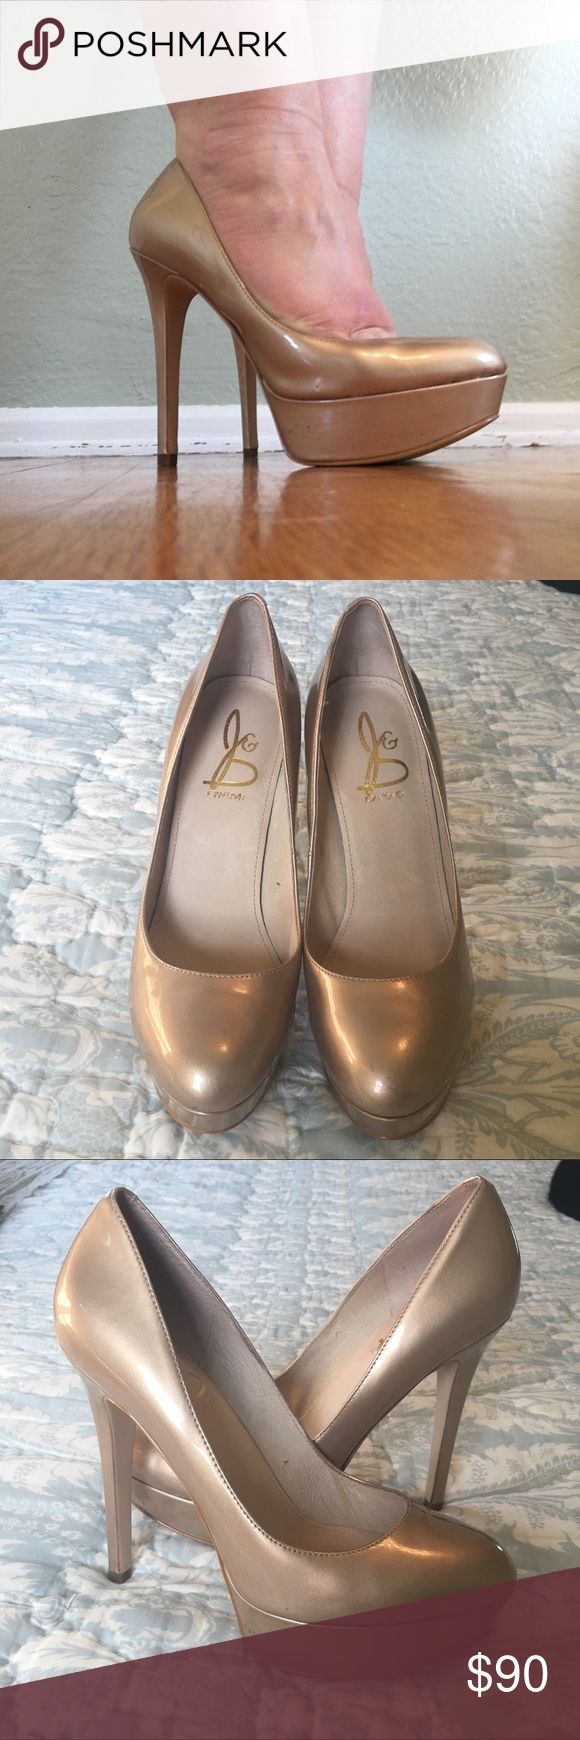 ❤️JOAN & DAVID❤️ PATENT PUMPS USED, but only worn once!! Scuffing on sole, but heel tips are in perfect condition. Perfect heel for a night out! Joan & David Shoes Heels